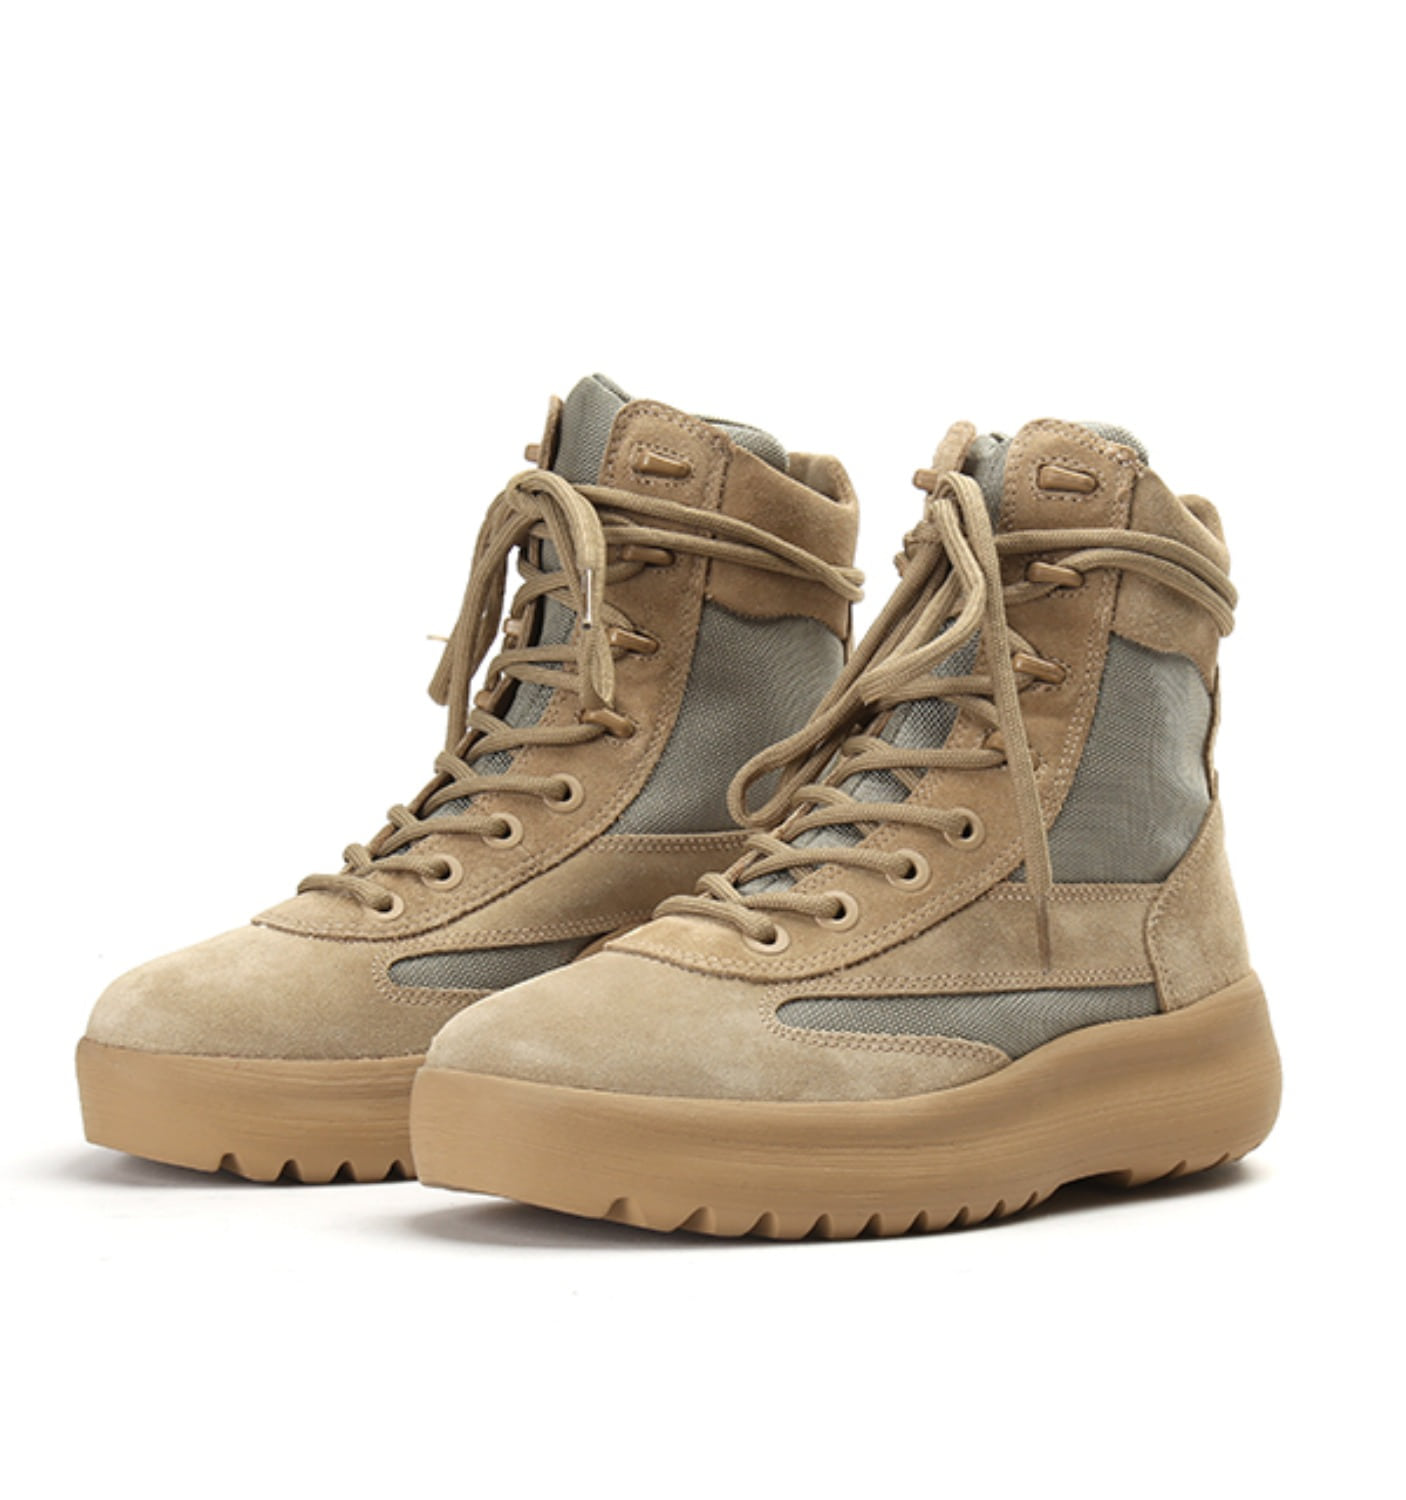 MILITARY BOOT THICK SUEDE&NYLON TAUPE(KM4005.132)